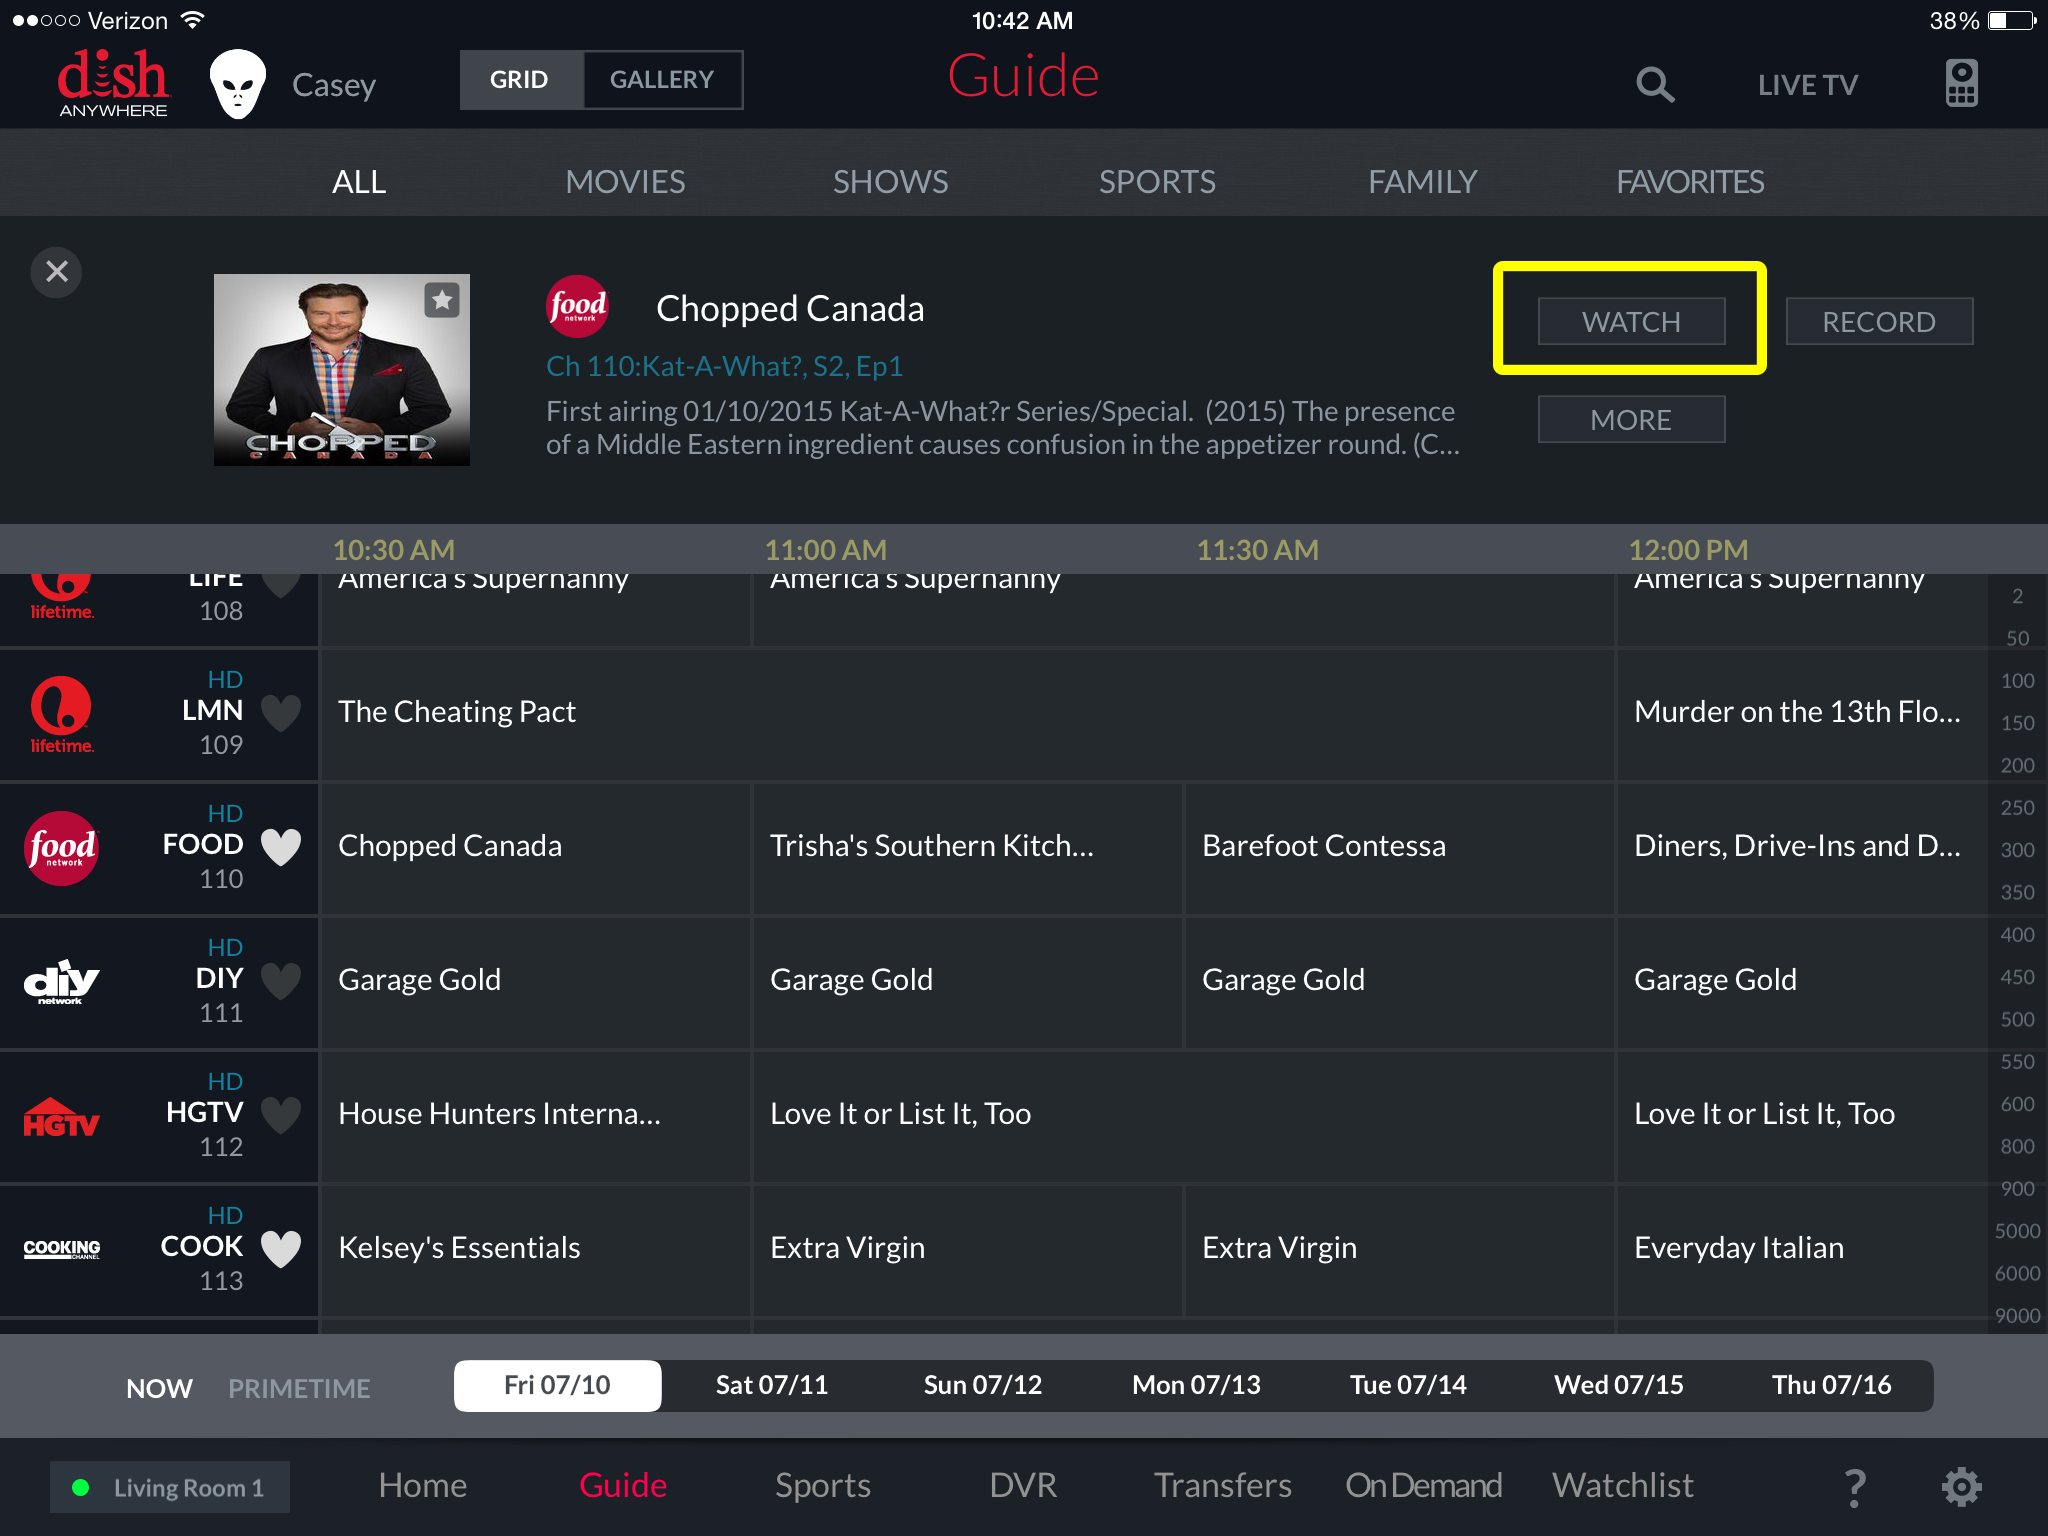 WATCH button on program detail page in DISH Anywhere tablet app